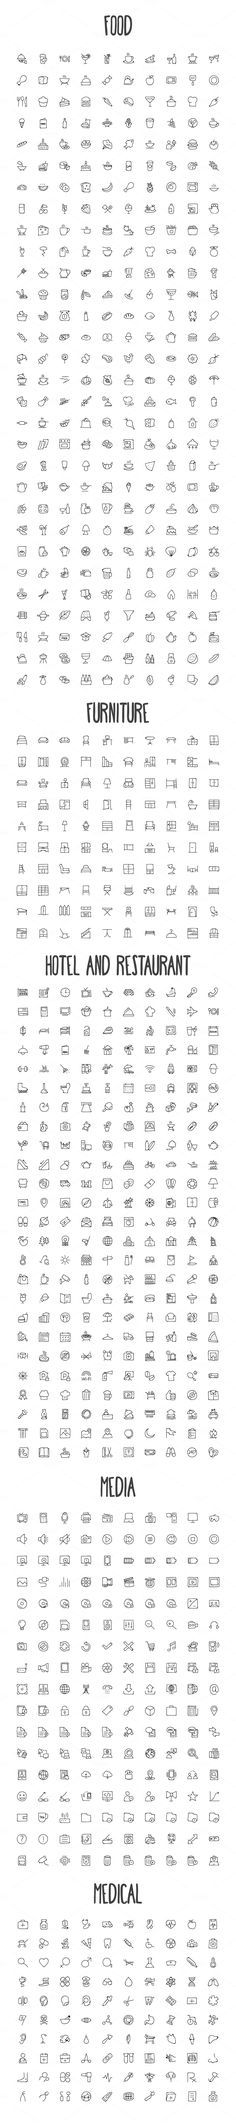 2440 Hand Drawn Doodle Icons Bundle by Creative Stall on Creative Market                                                                                                                                                                                 More